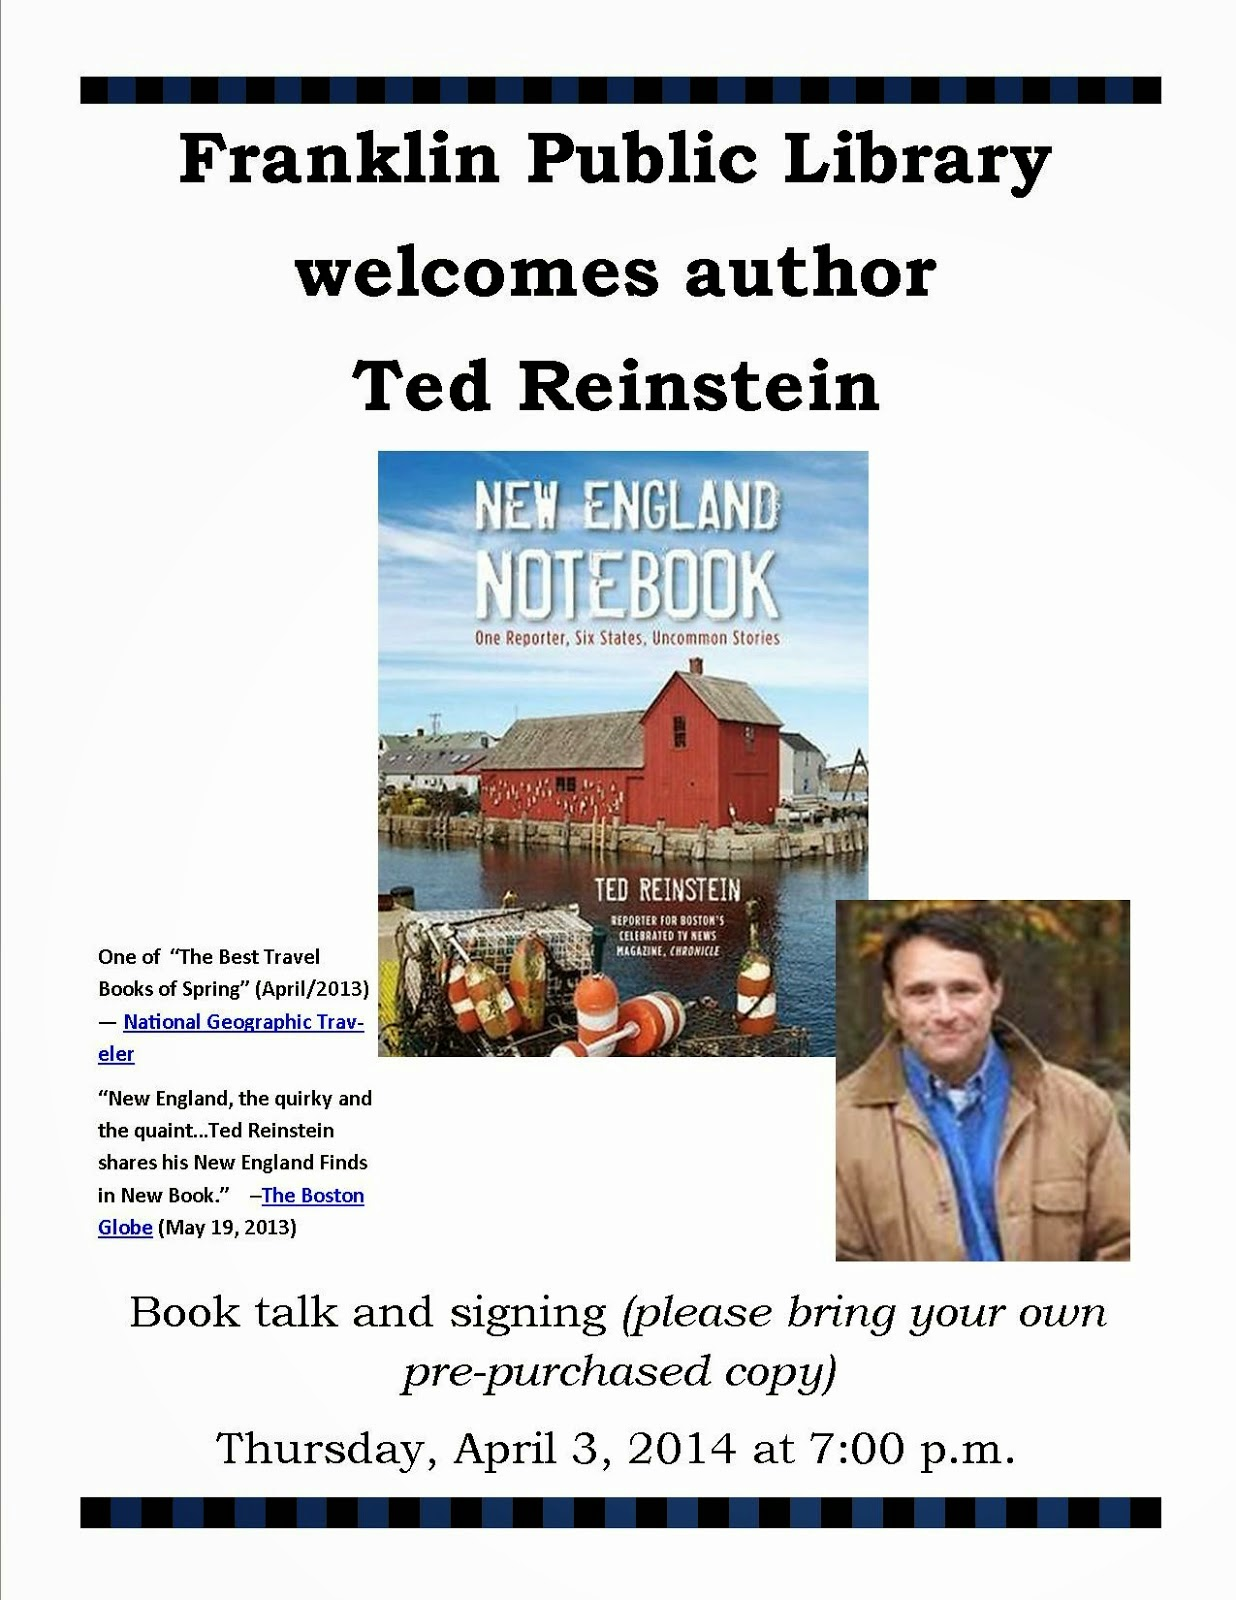 Ted Reinstein, author of New England Notebook